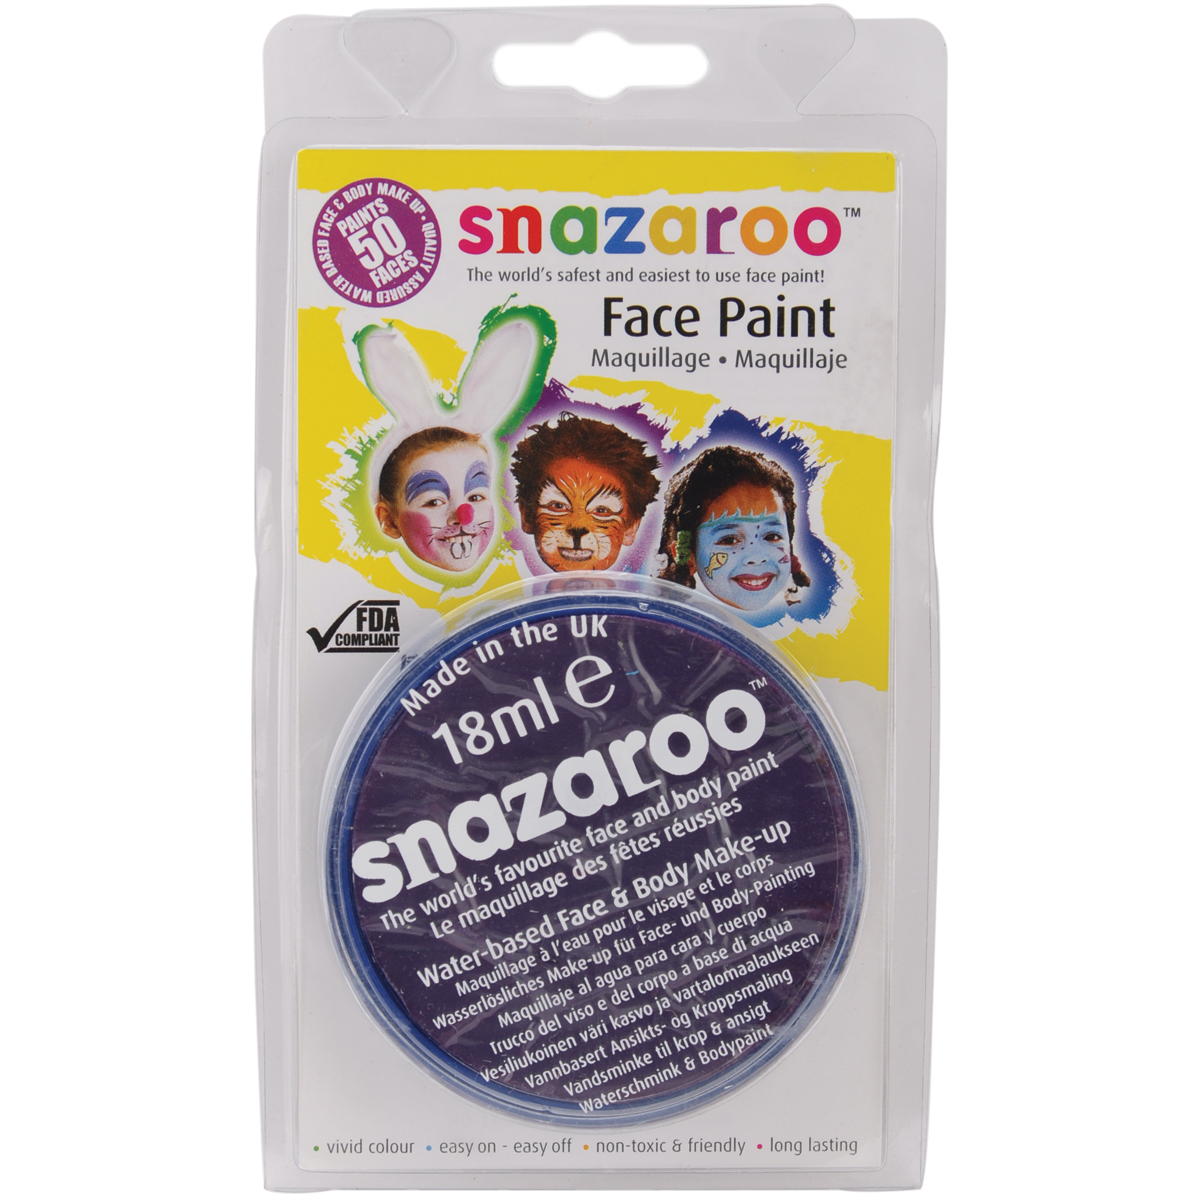 Snazaroo Face Paint 18ml-Bright Red